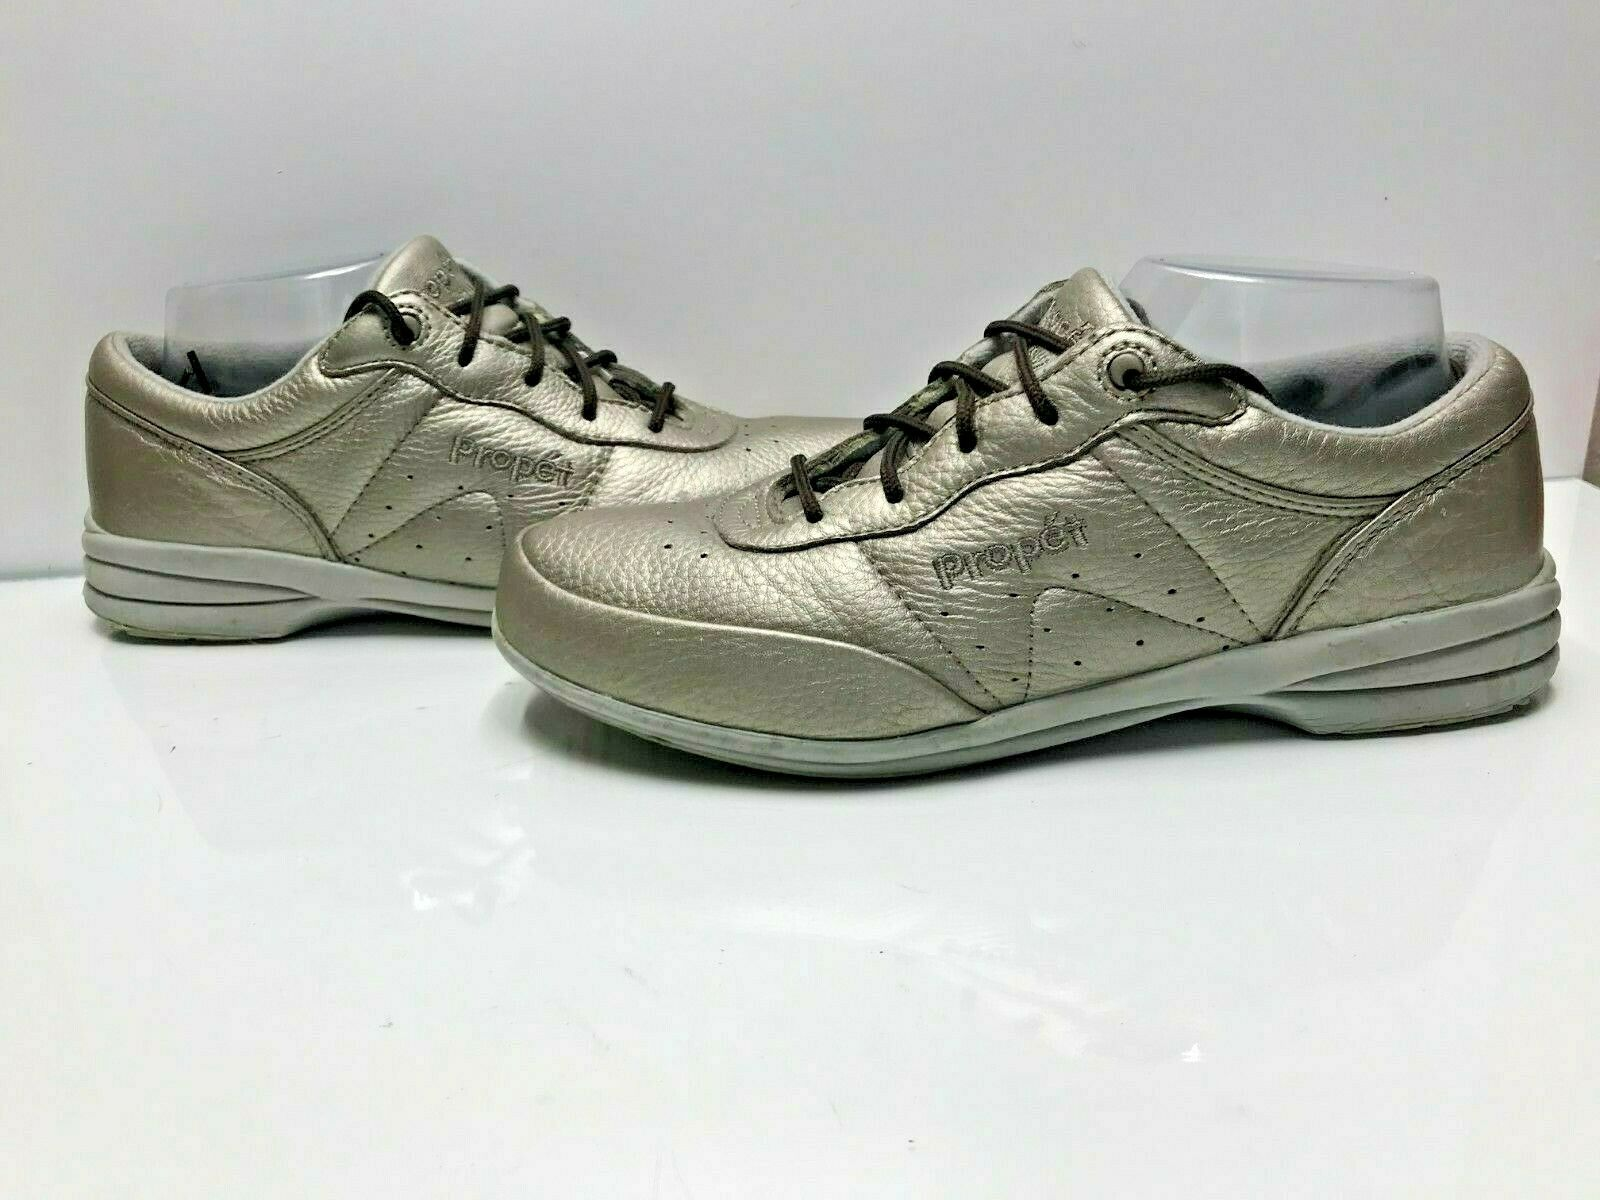 Propet Size 9 D Wide Womens Metallic Gold Brown Leather Walking Comfort Shoes